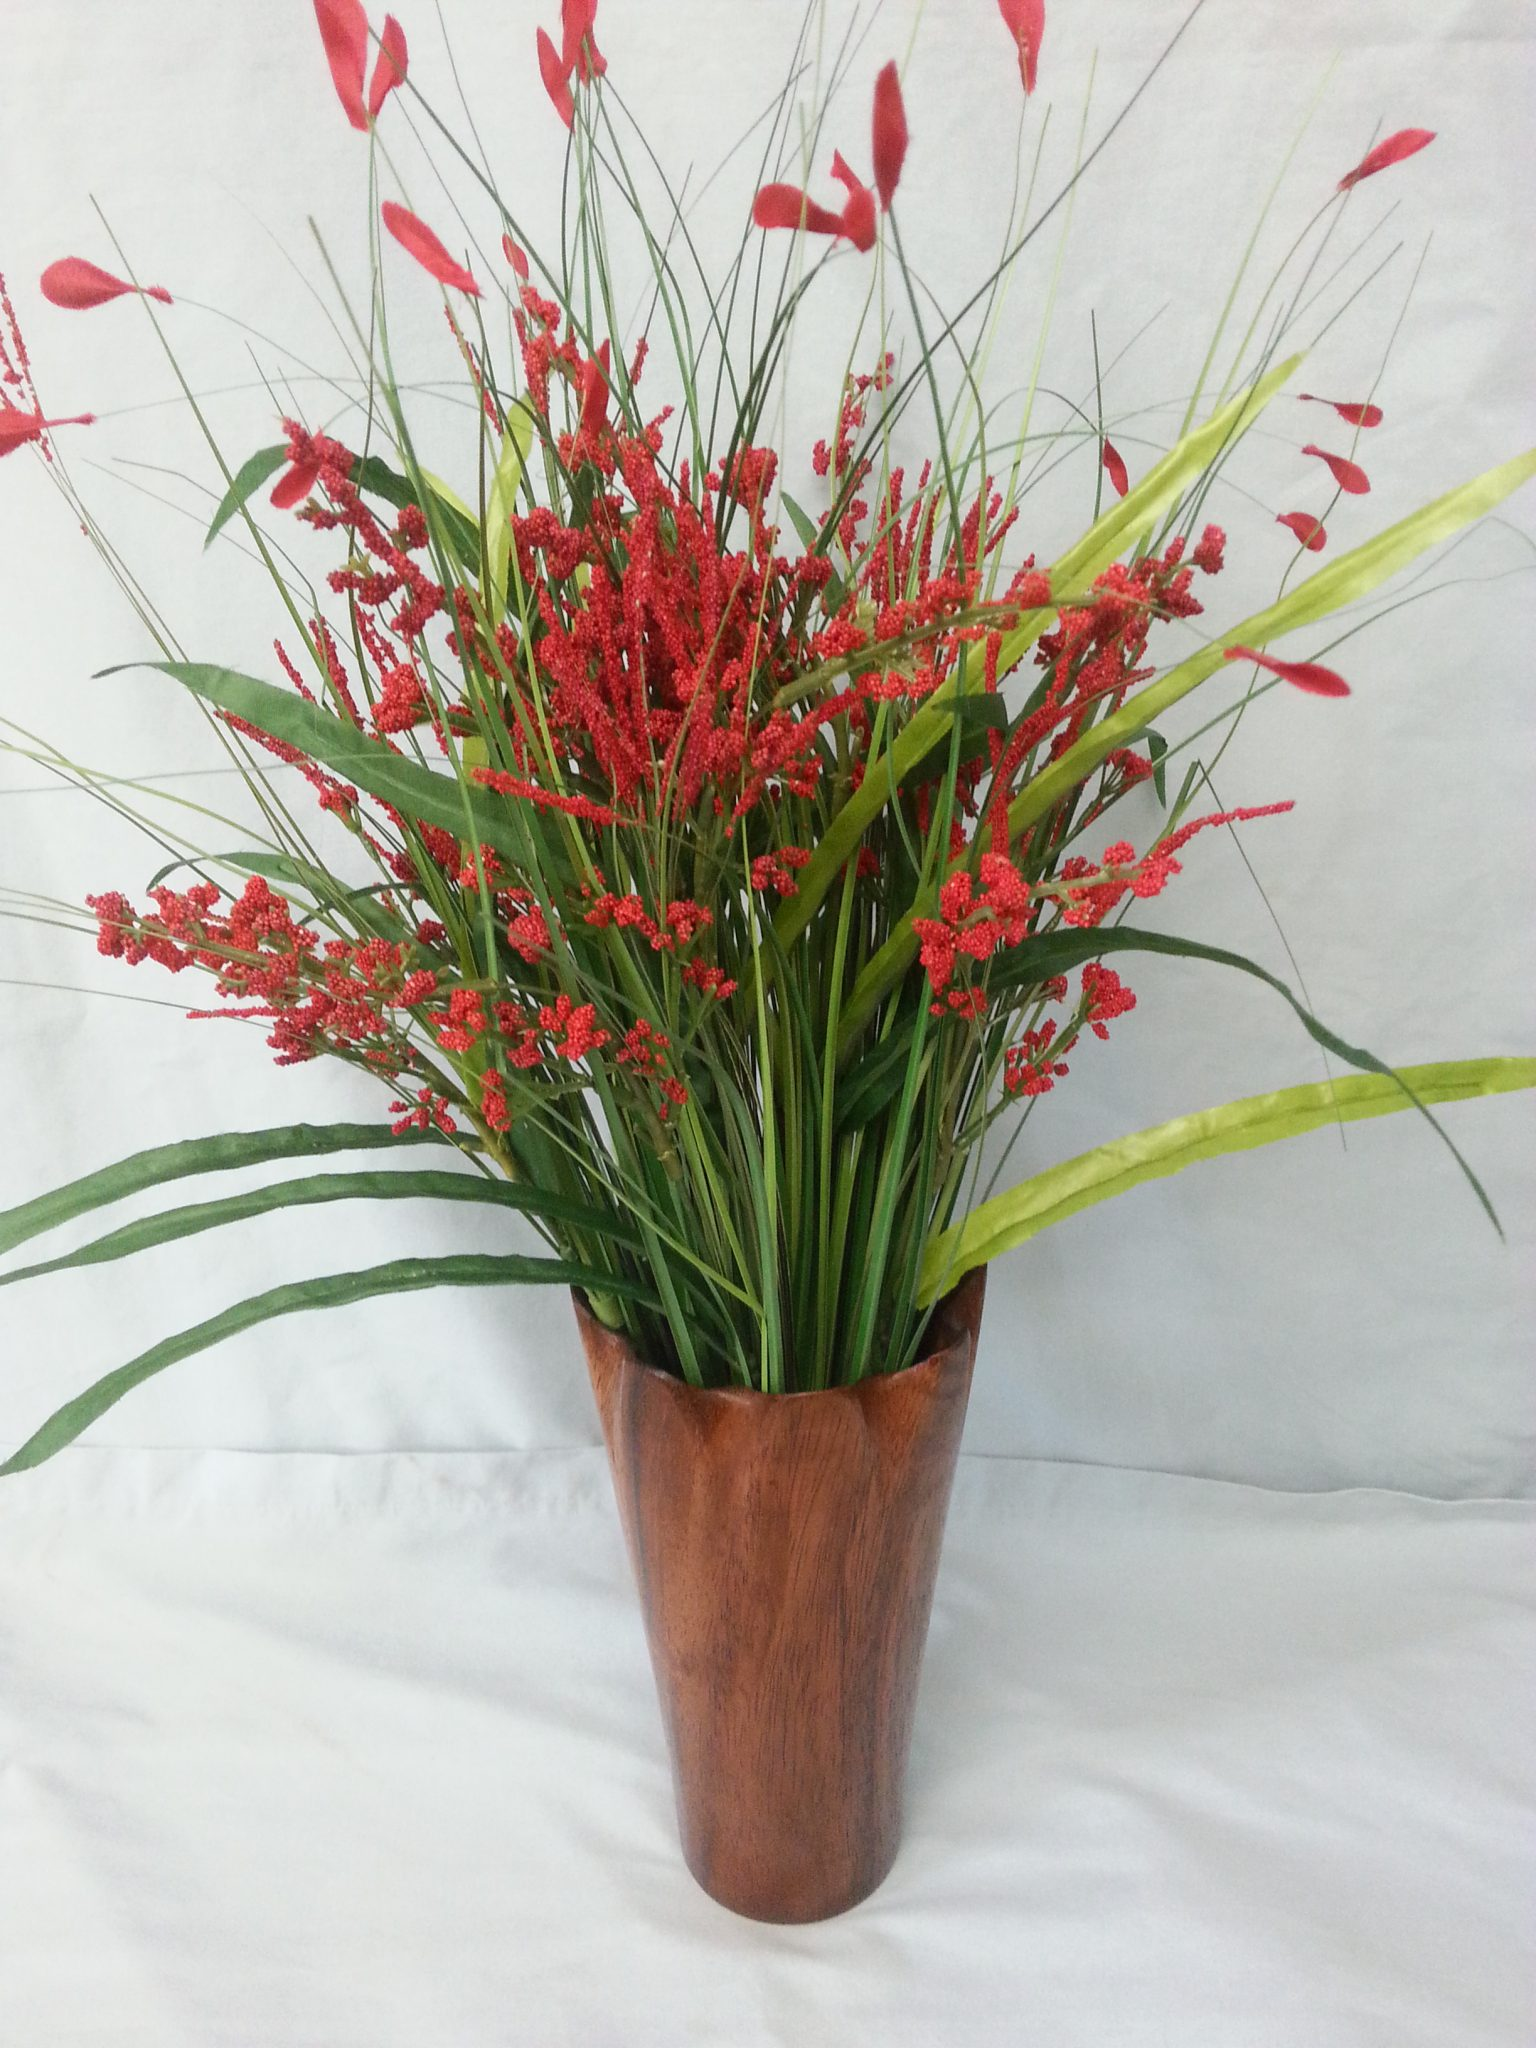 Red River Gum Eucalyptus vase. Turned and hand carved.